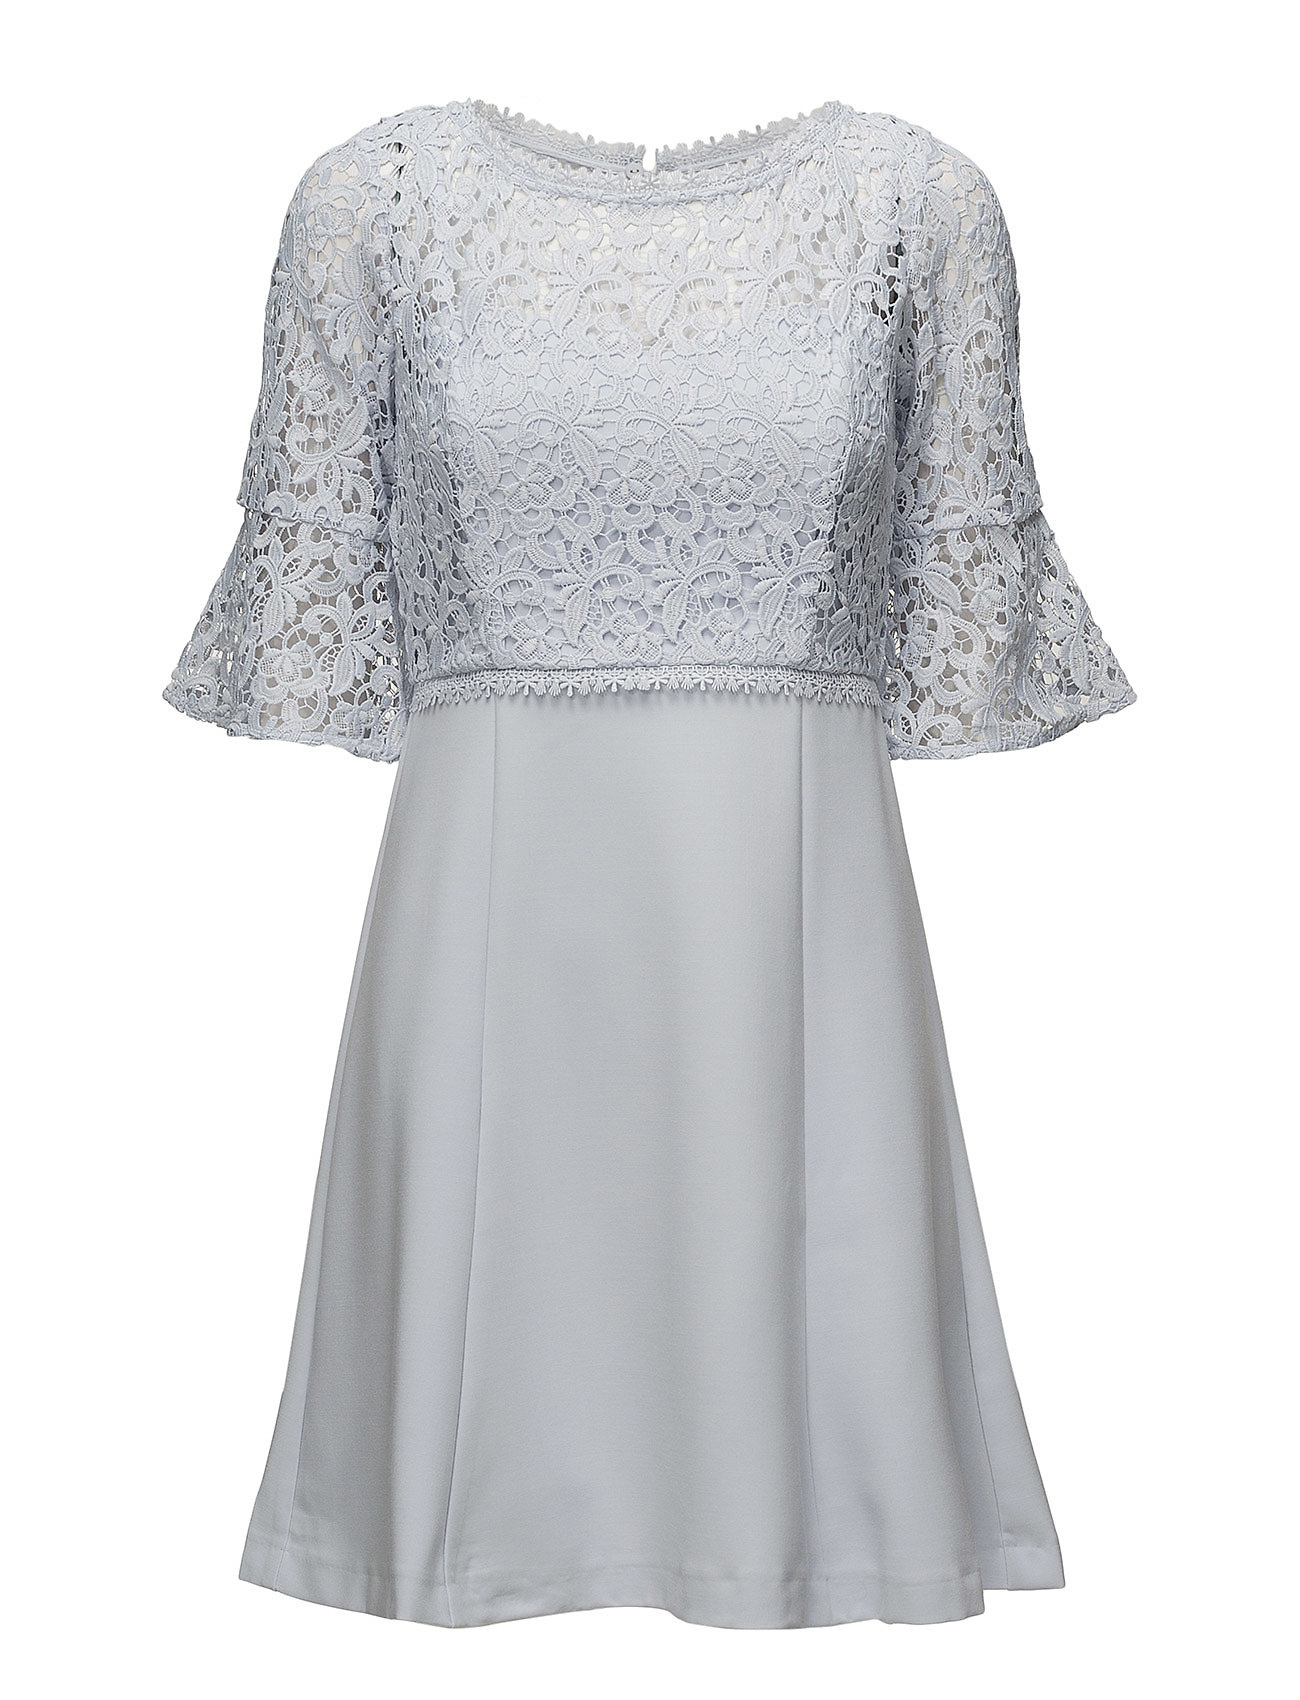 88678cbcf152 Whisper Ruth Lace Mix Fit Drss (Sea Breeze) (£101.25) - French ...